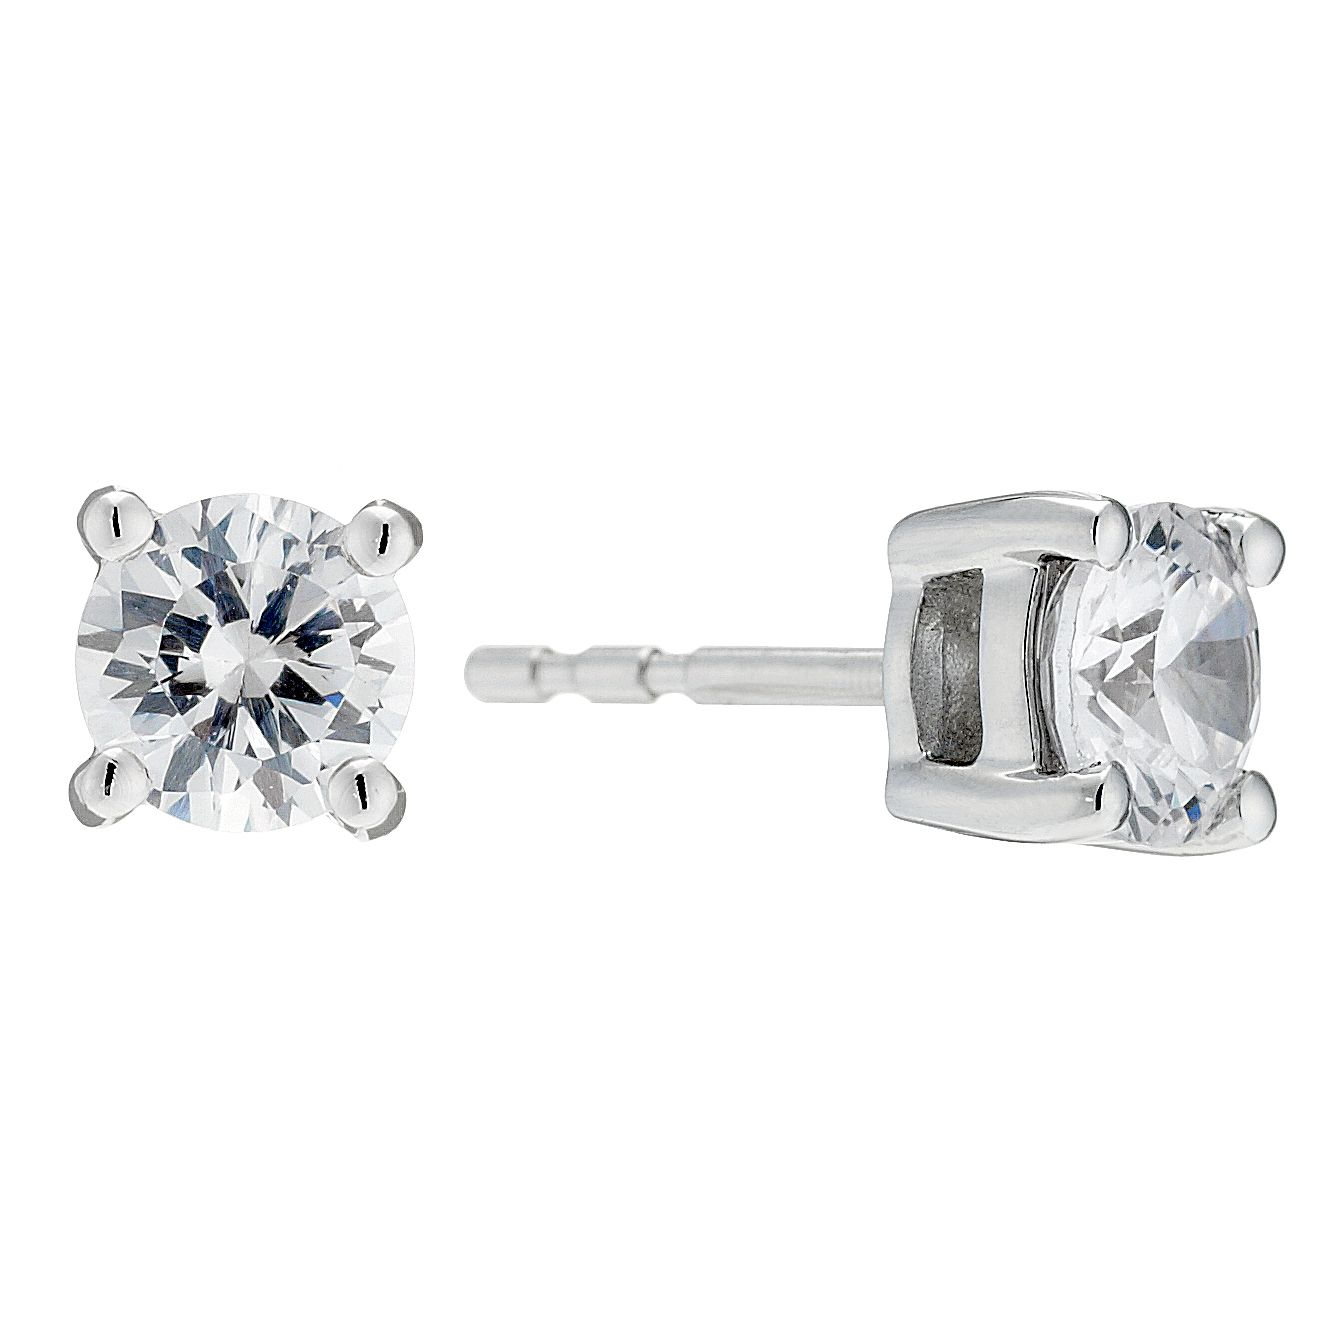 18ct White Gold 1.25 Carat Diamond Stud Earrings - Product number 8691711